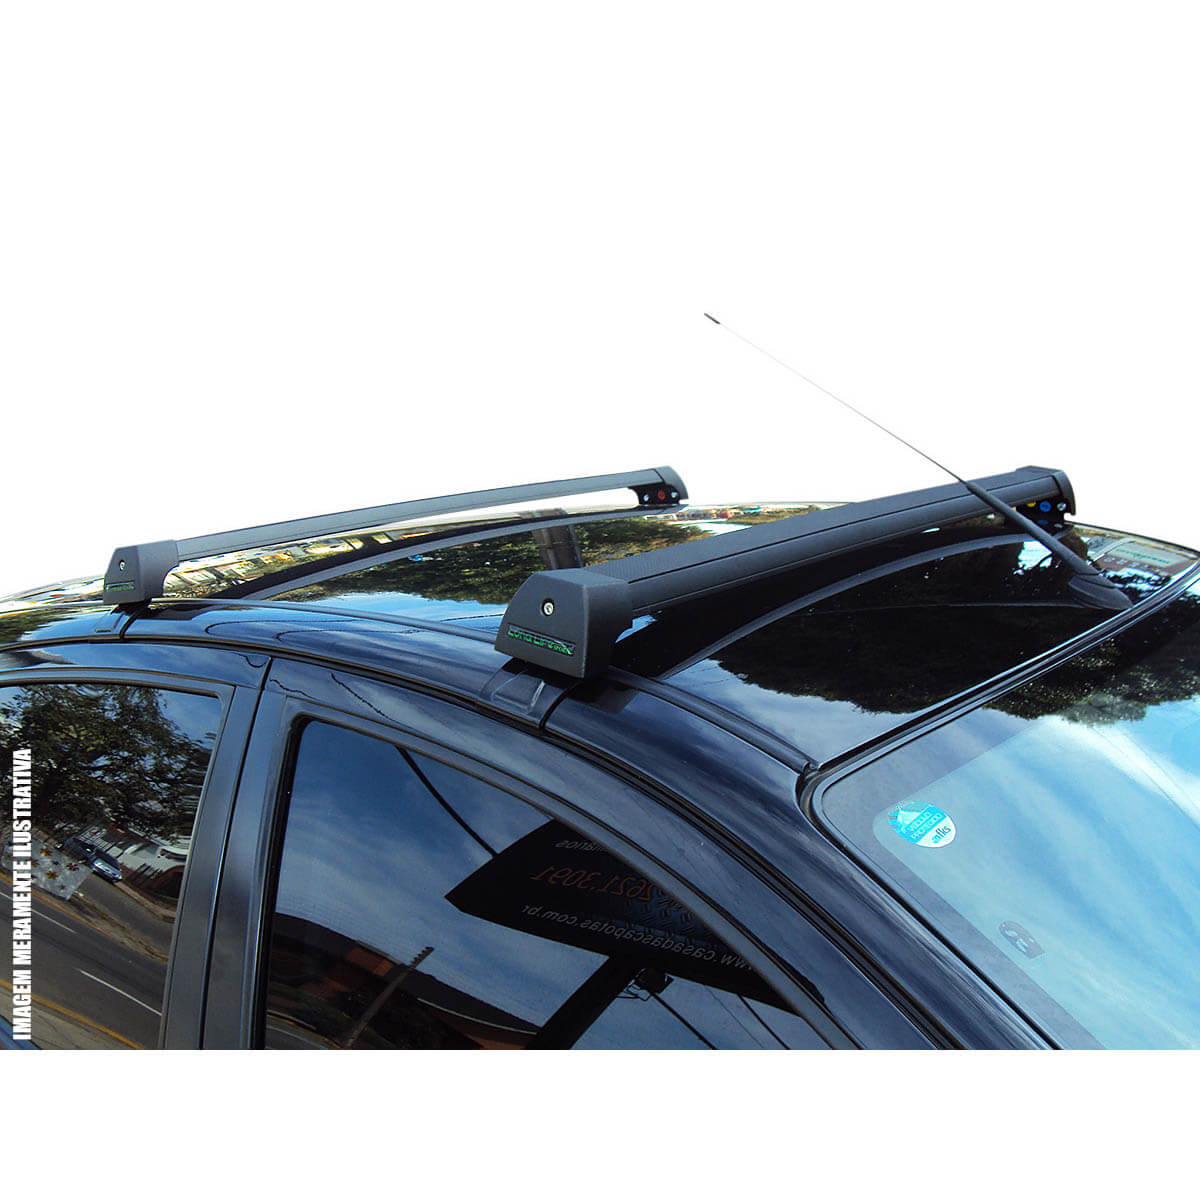 Rack de teto C3 2002 a 2012 Long Life Sports preto